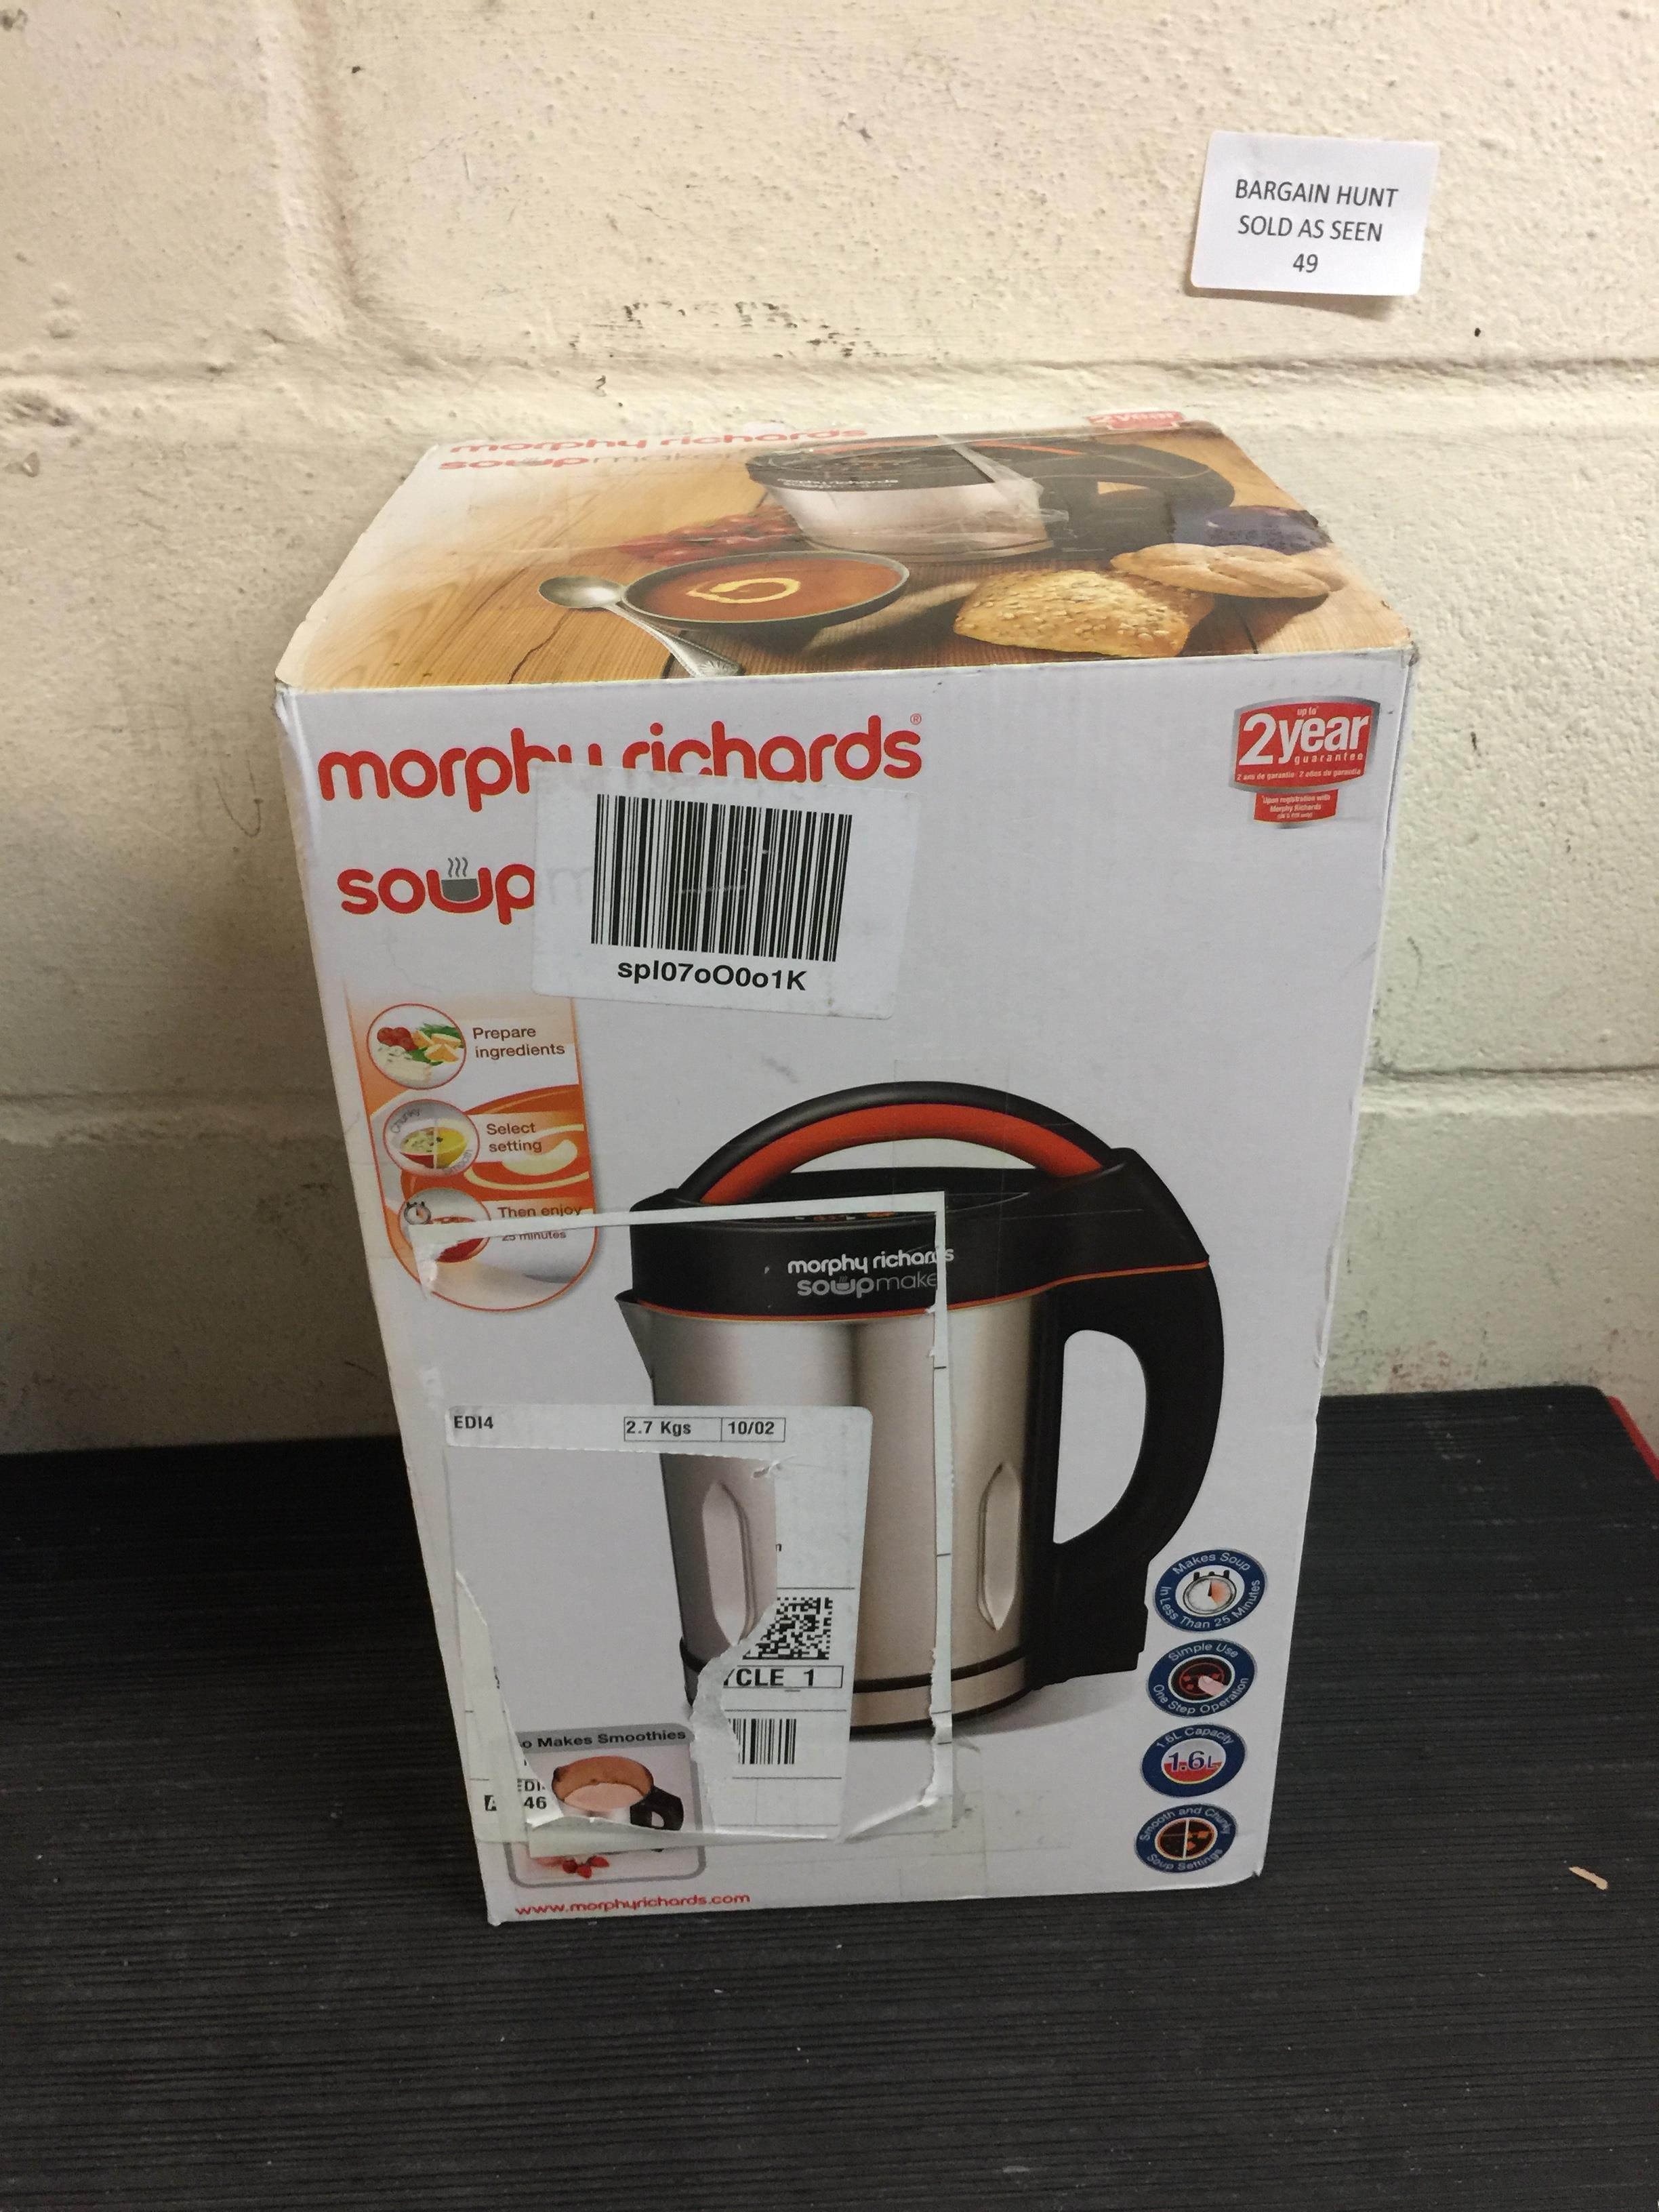 Lot 49 - Morphy Richards Soupmaker 48822 Stainless Steel Soup Maker